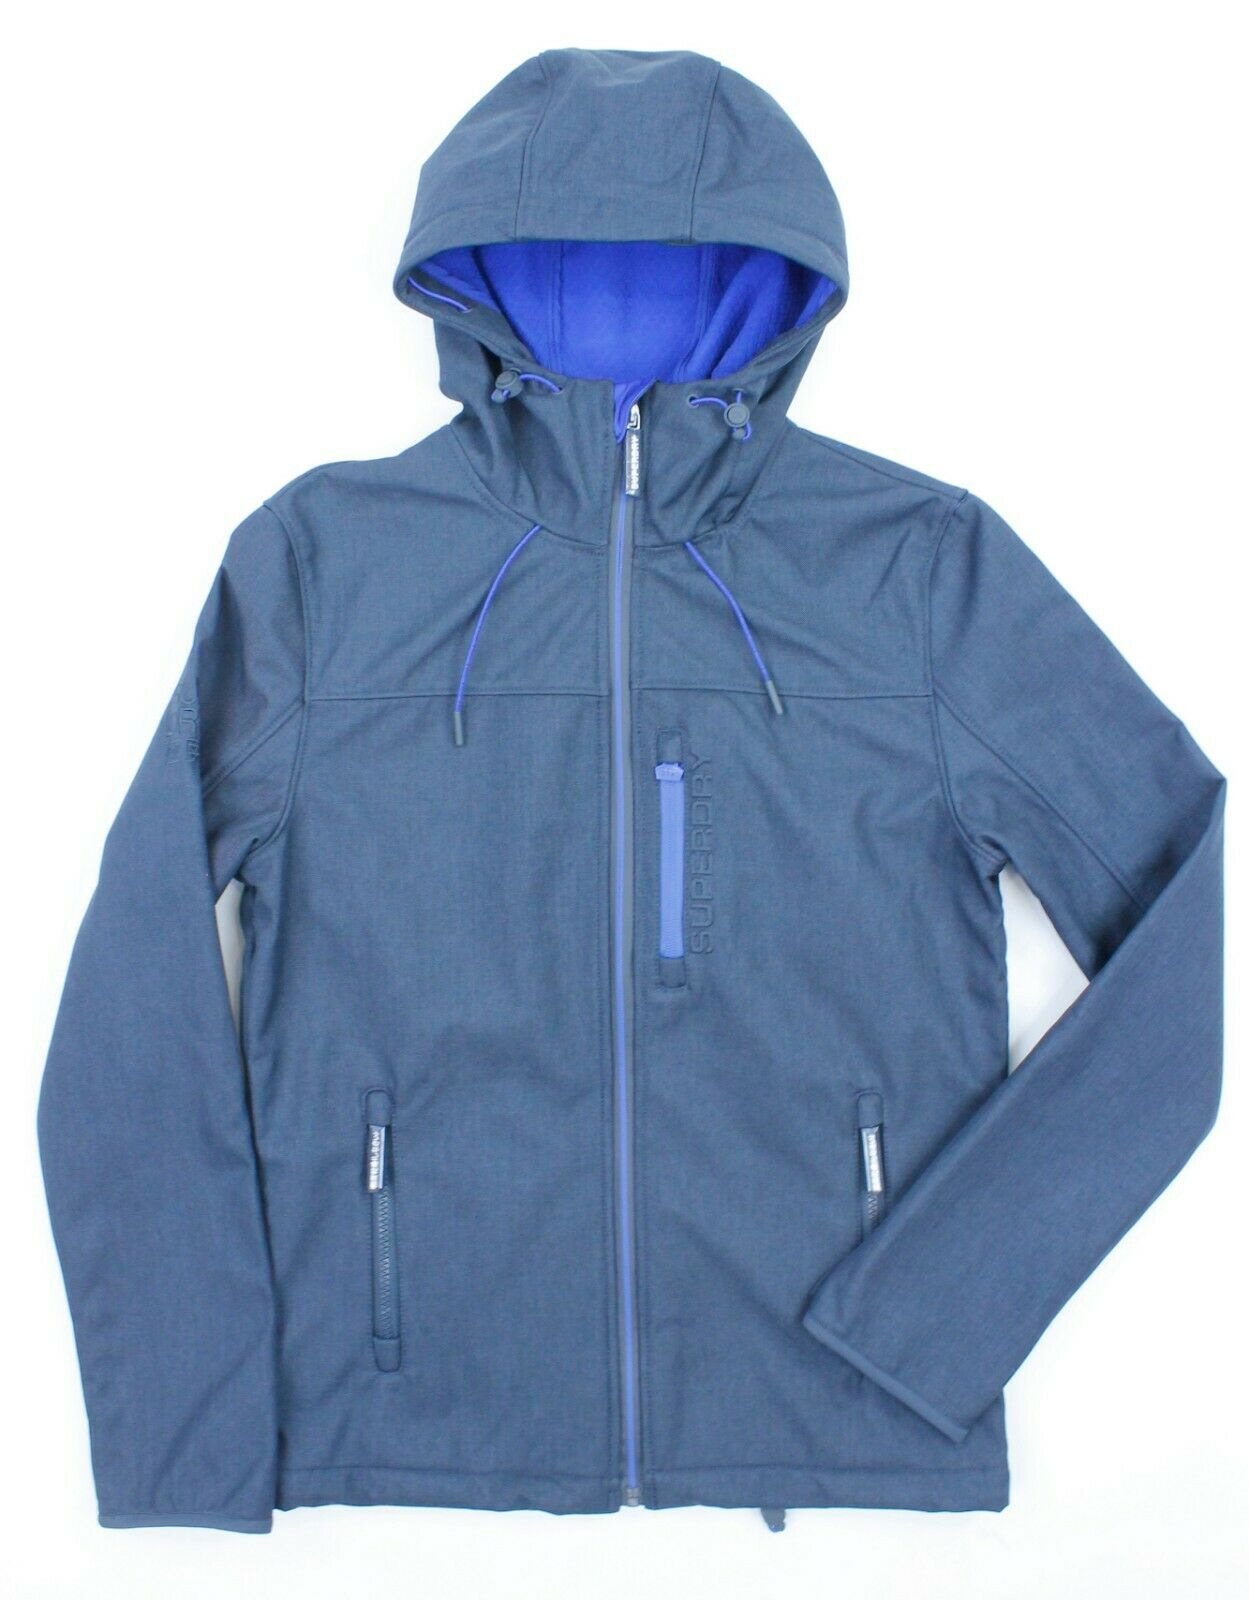 Superdry - Hooded Windtrekker in bluee Marl - S - NEW WITH TAGS RRP